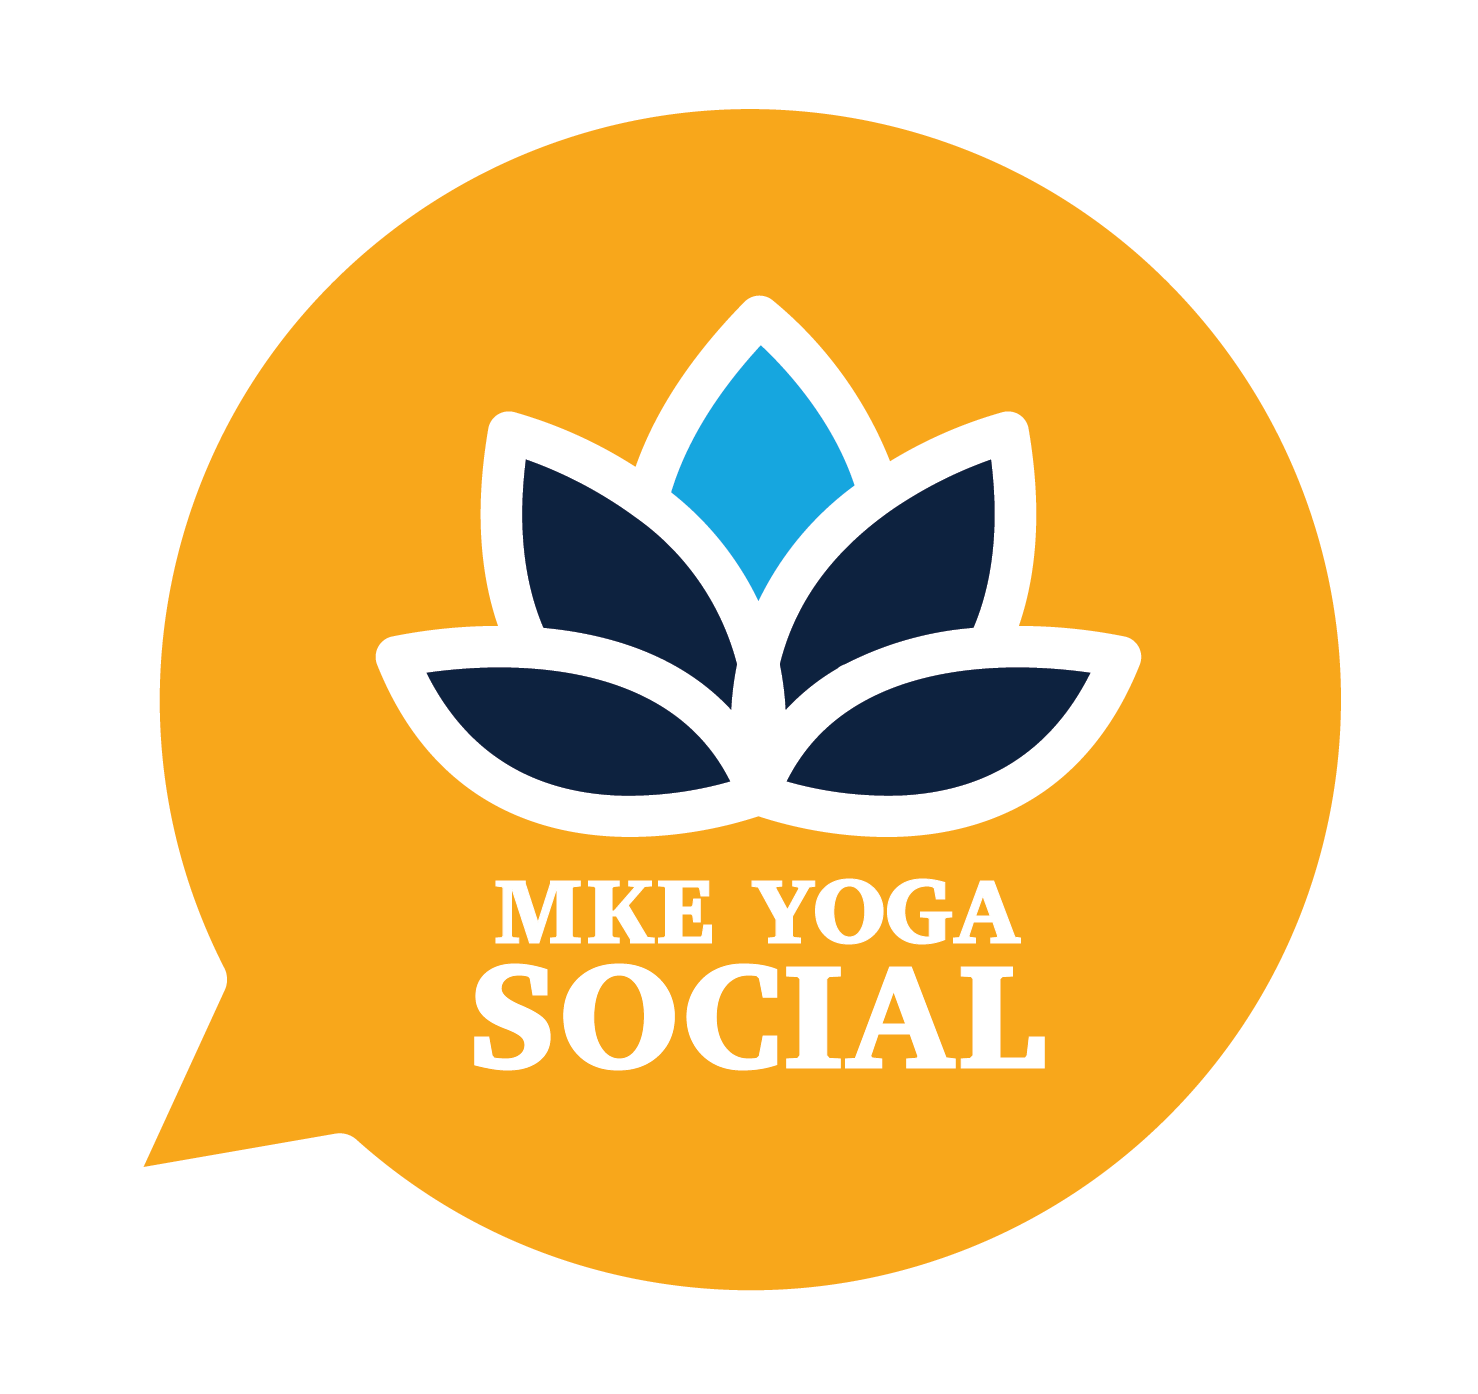 mkeyogasocial-02.png